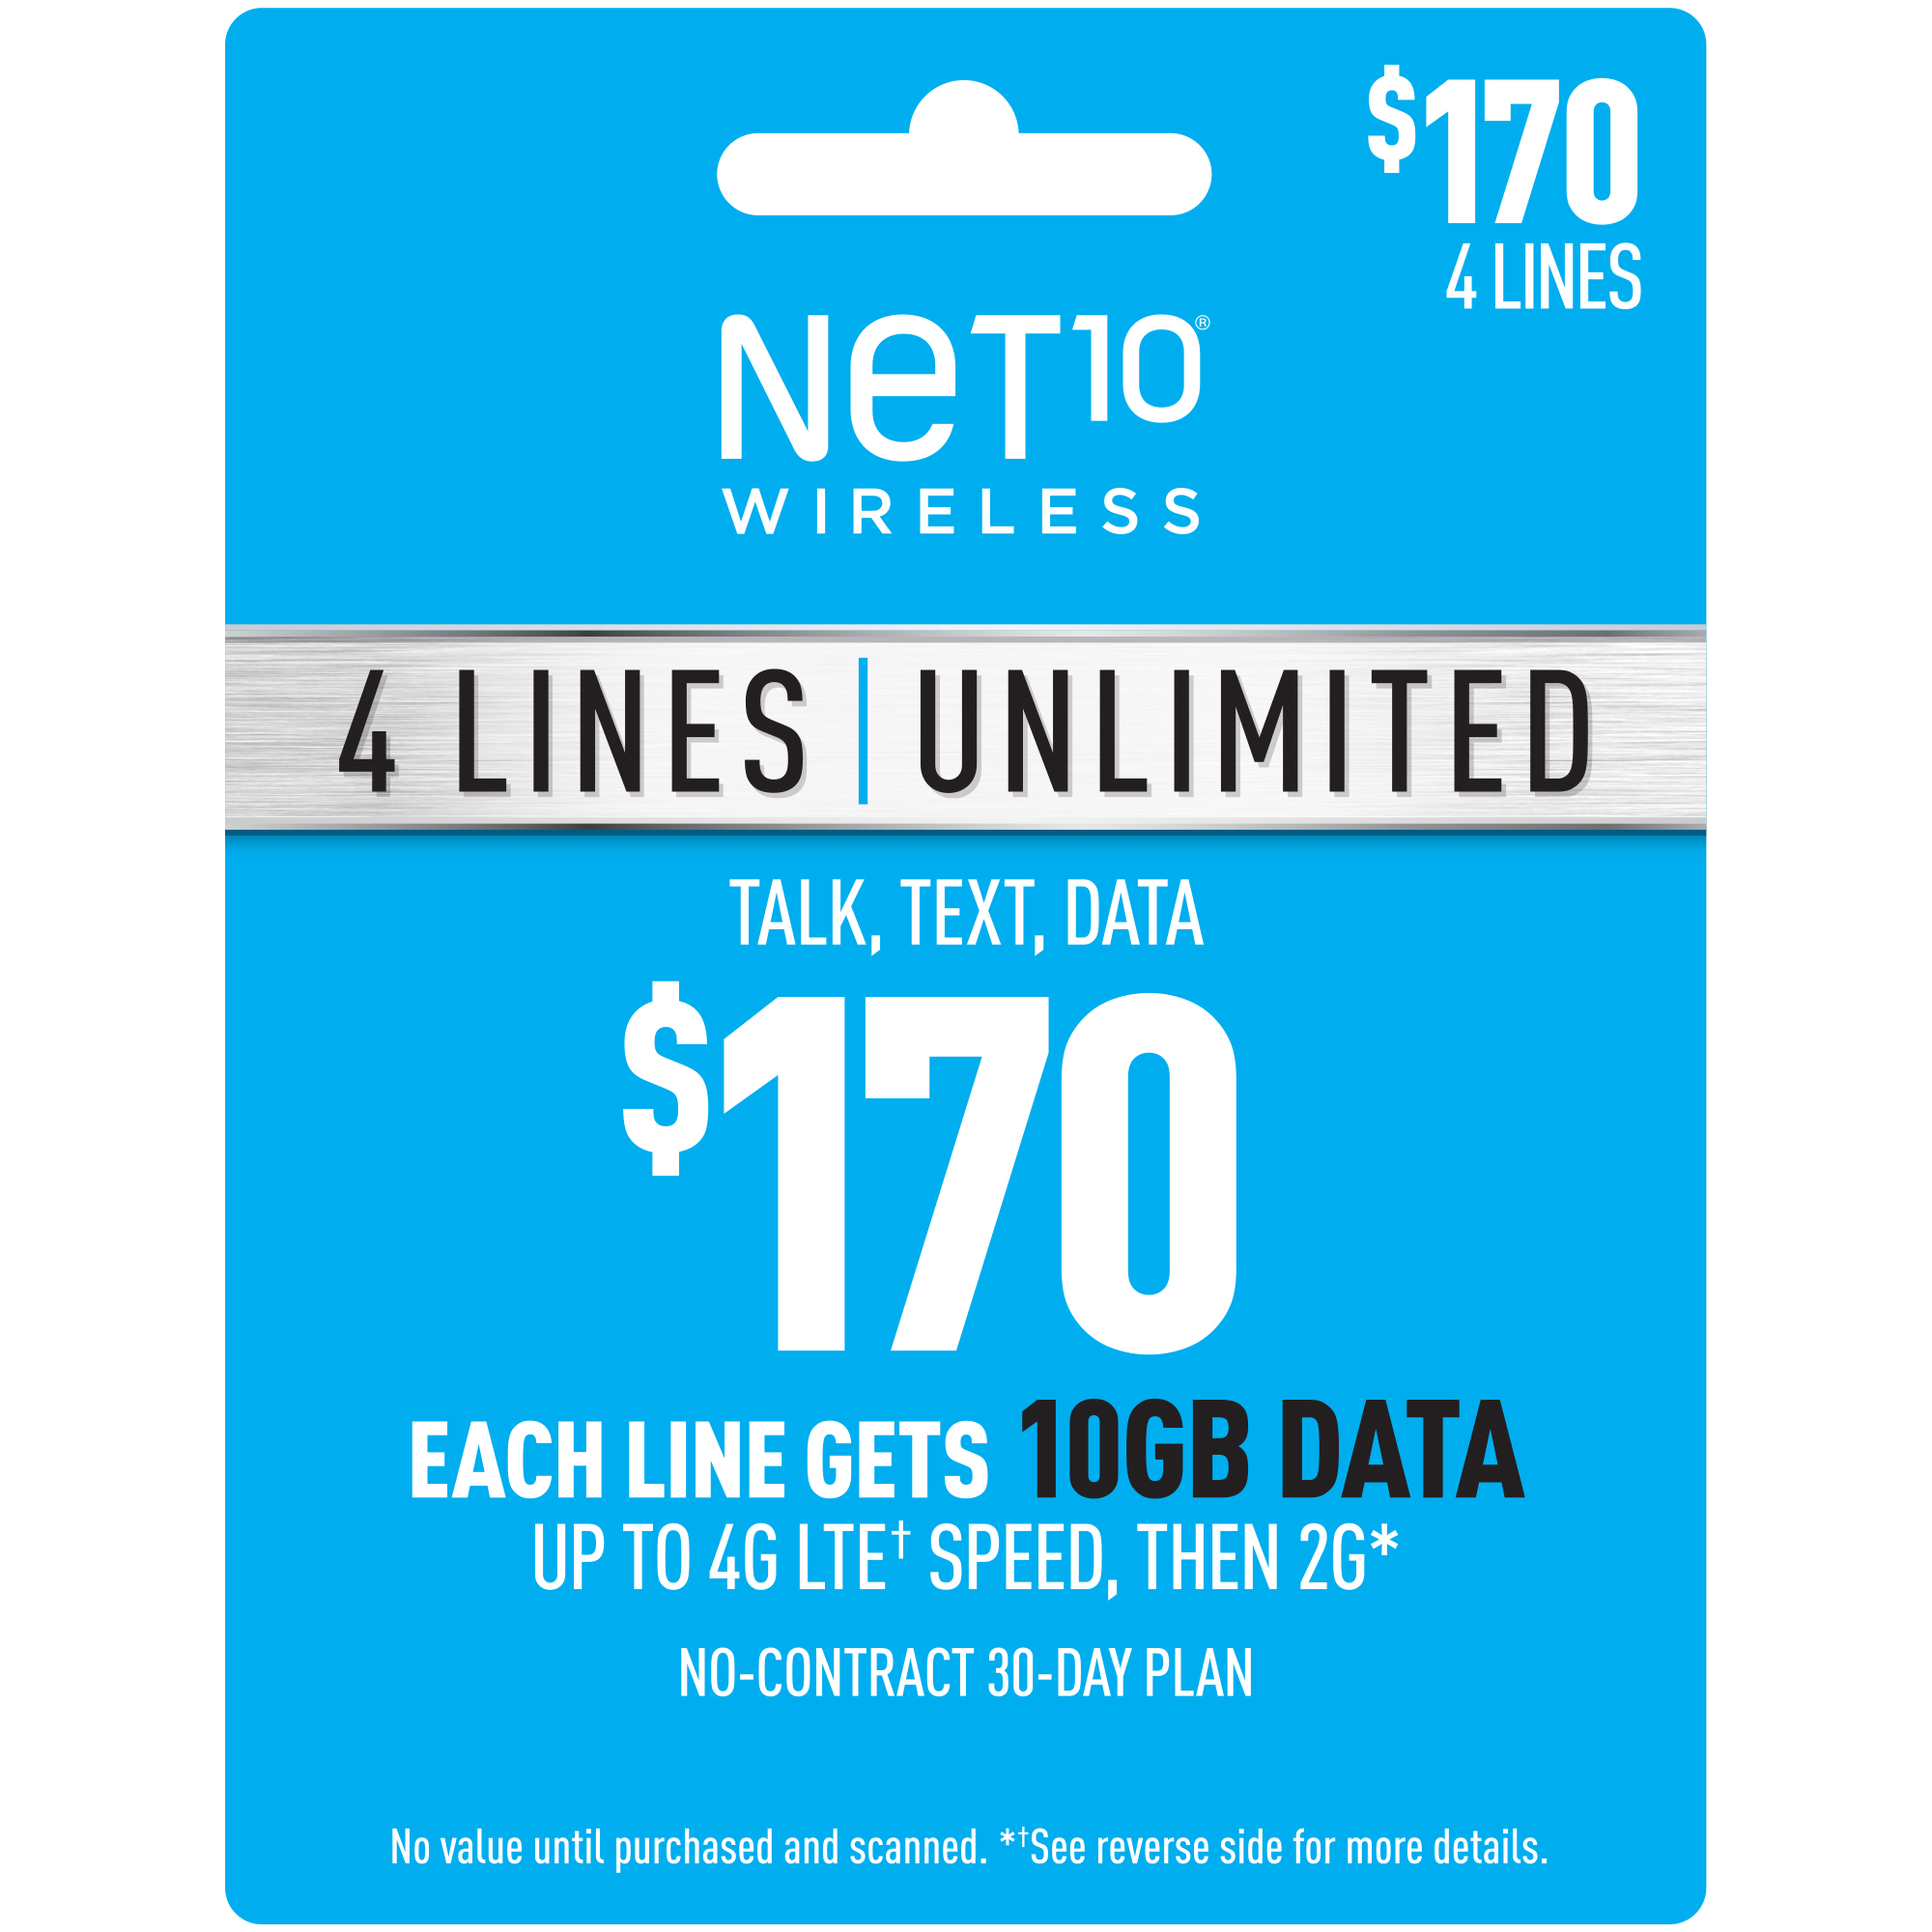 Net10 $170 Unlimited Family & Friends Plan for 4 Lines (10GB of data per line at high speeds, then 2G*) (Email Delivery)